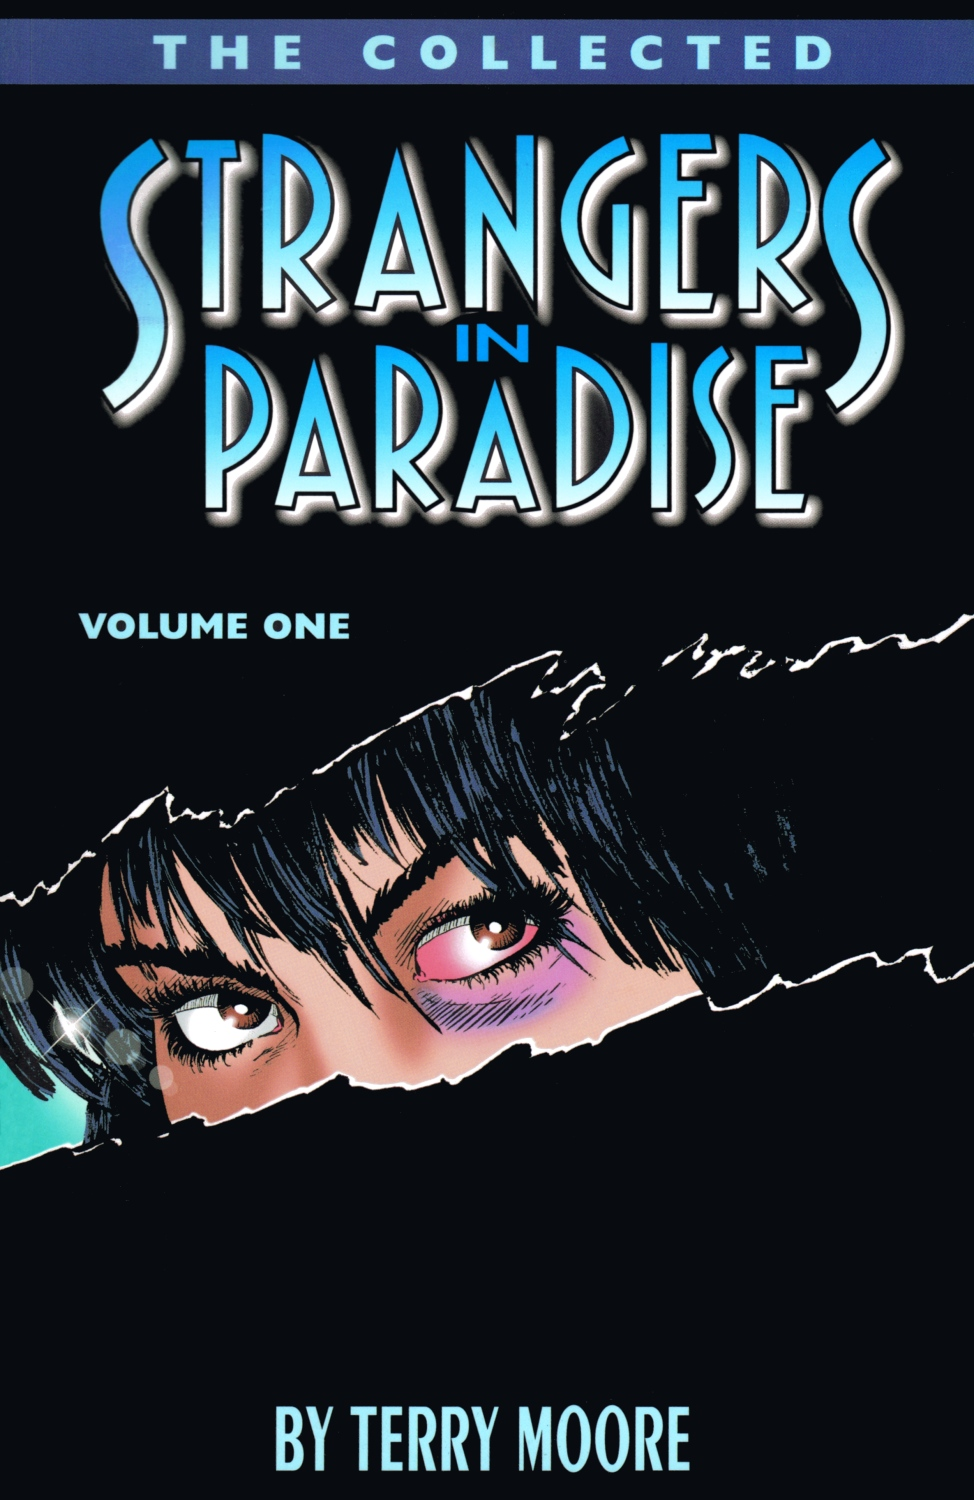 the strangers paradise Strangers in paradise is an independent comic book series created by terry moore that lasted 106 issues through three volumes, the third being several times as long.